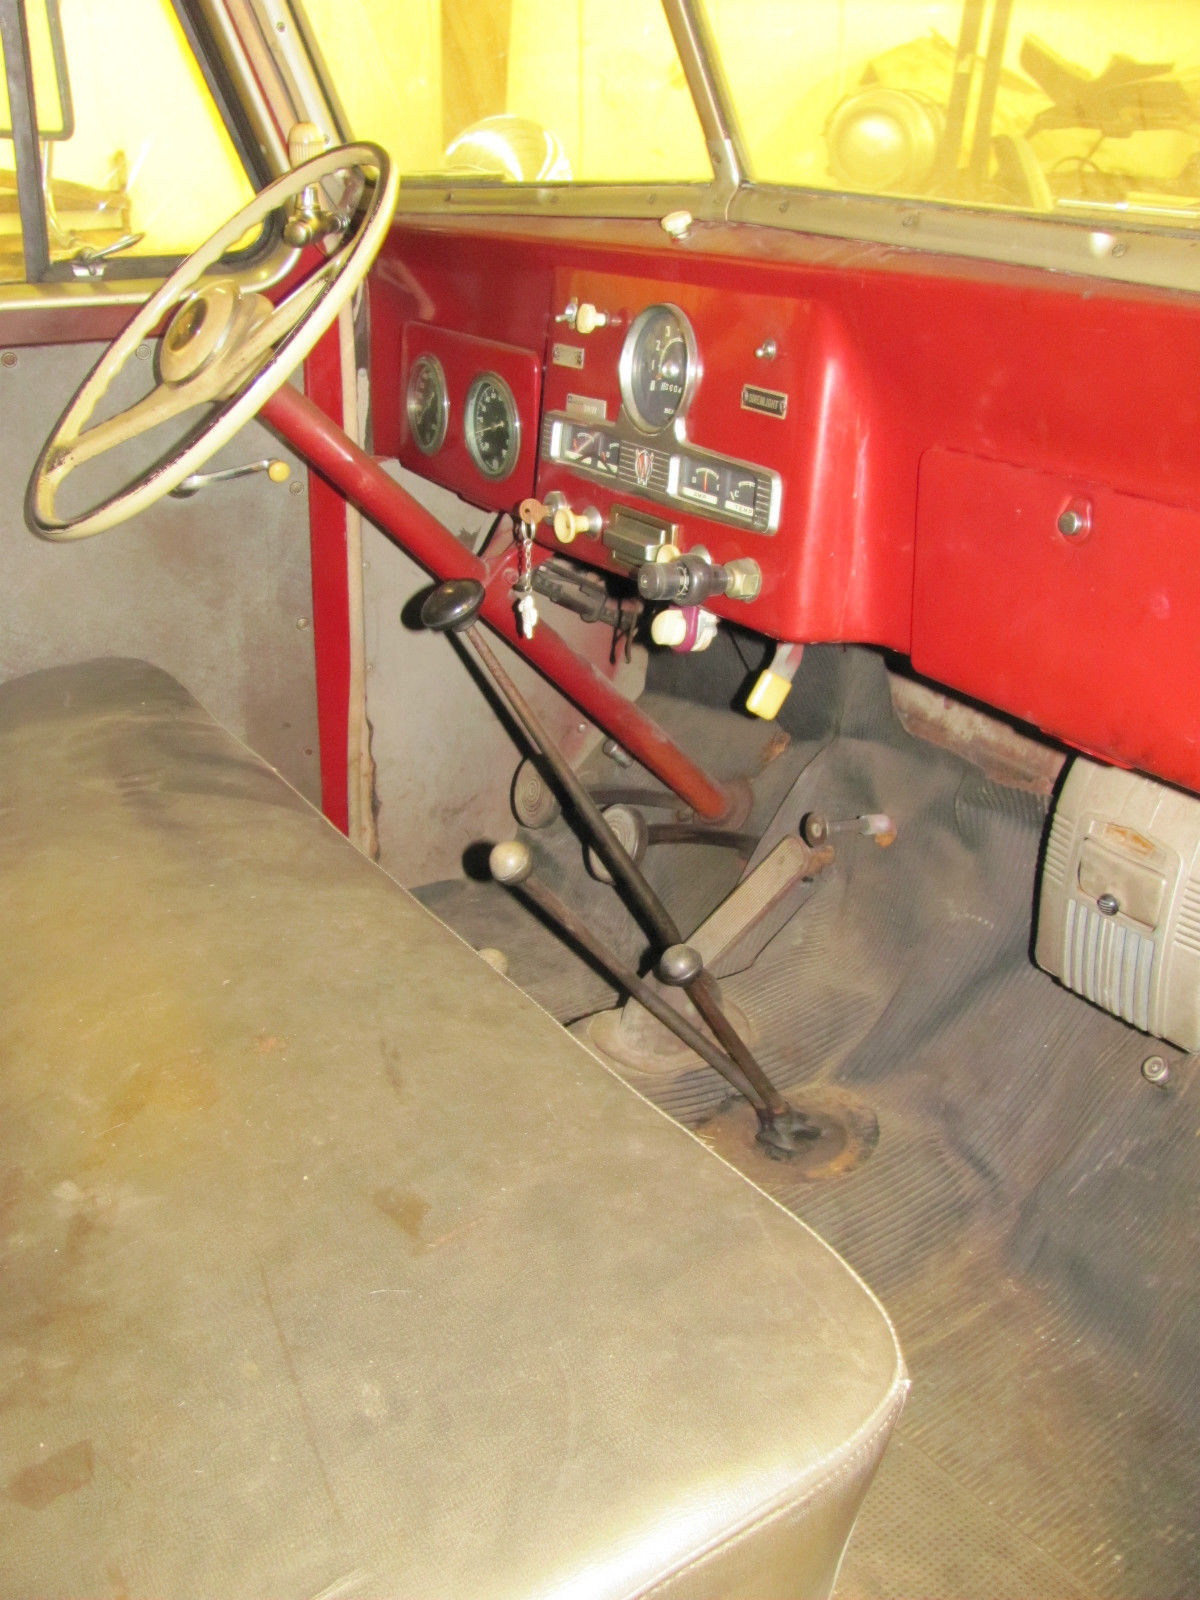 Antique Fire Trucks For Sale On Craigslist | Autos Post